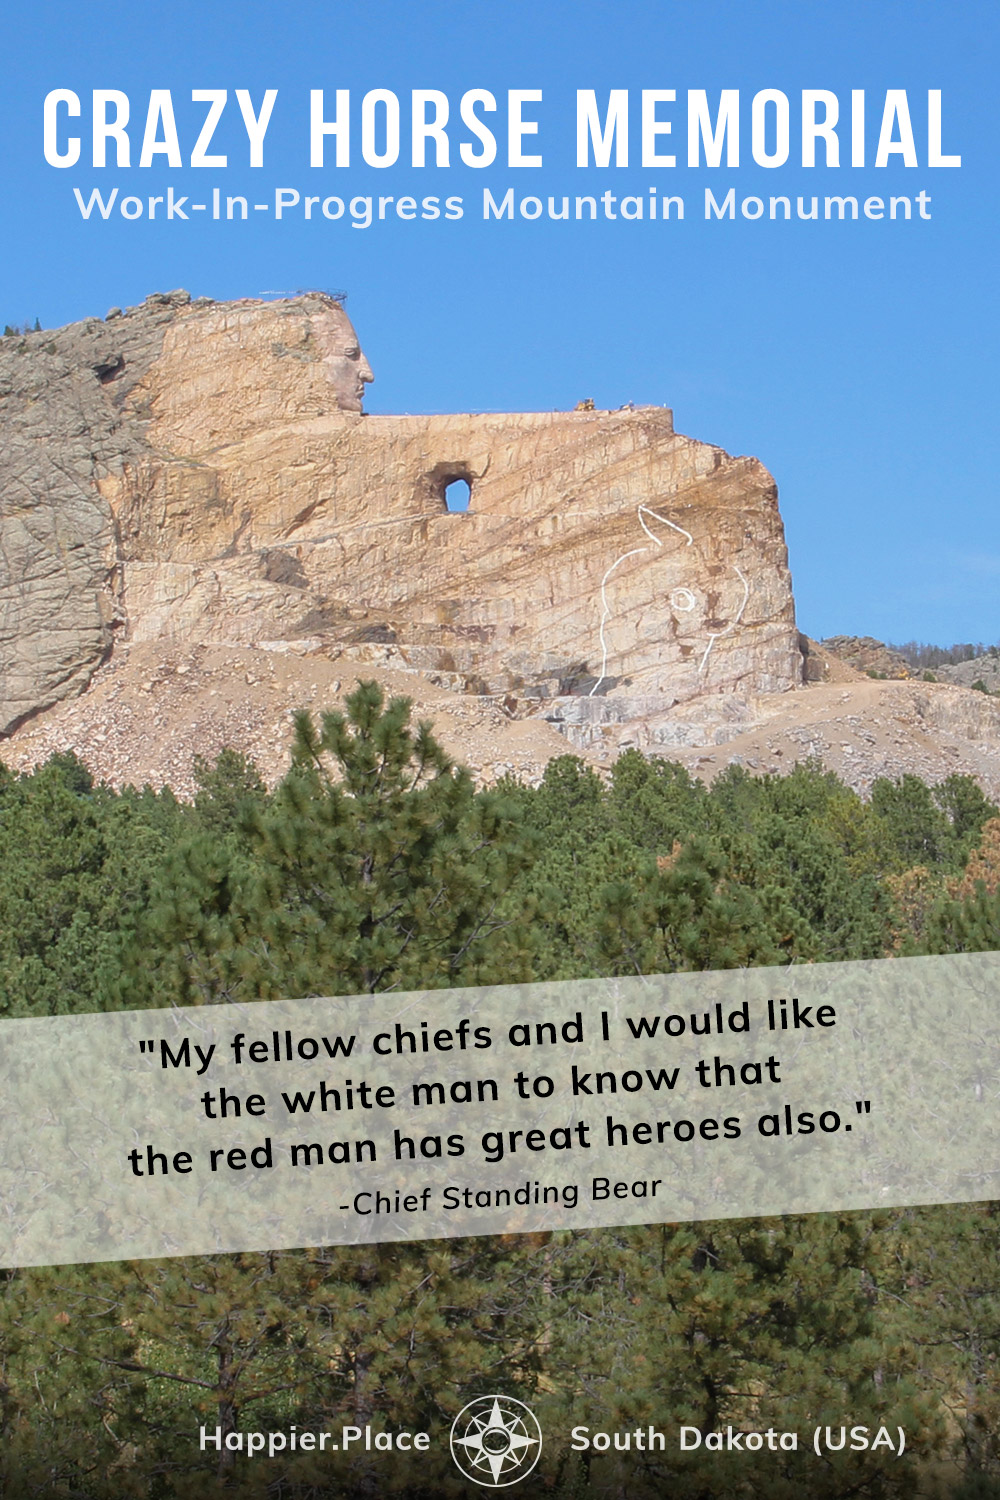 Crazy Horse Memorial: Epic Work-In-Progress Mountain Monument (South Dakota)